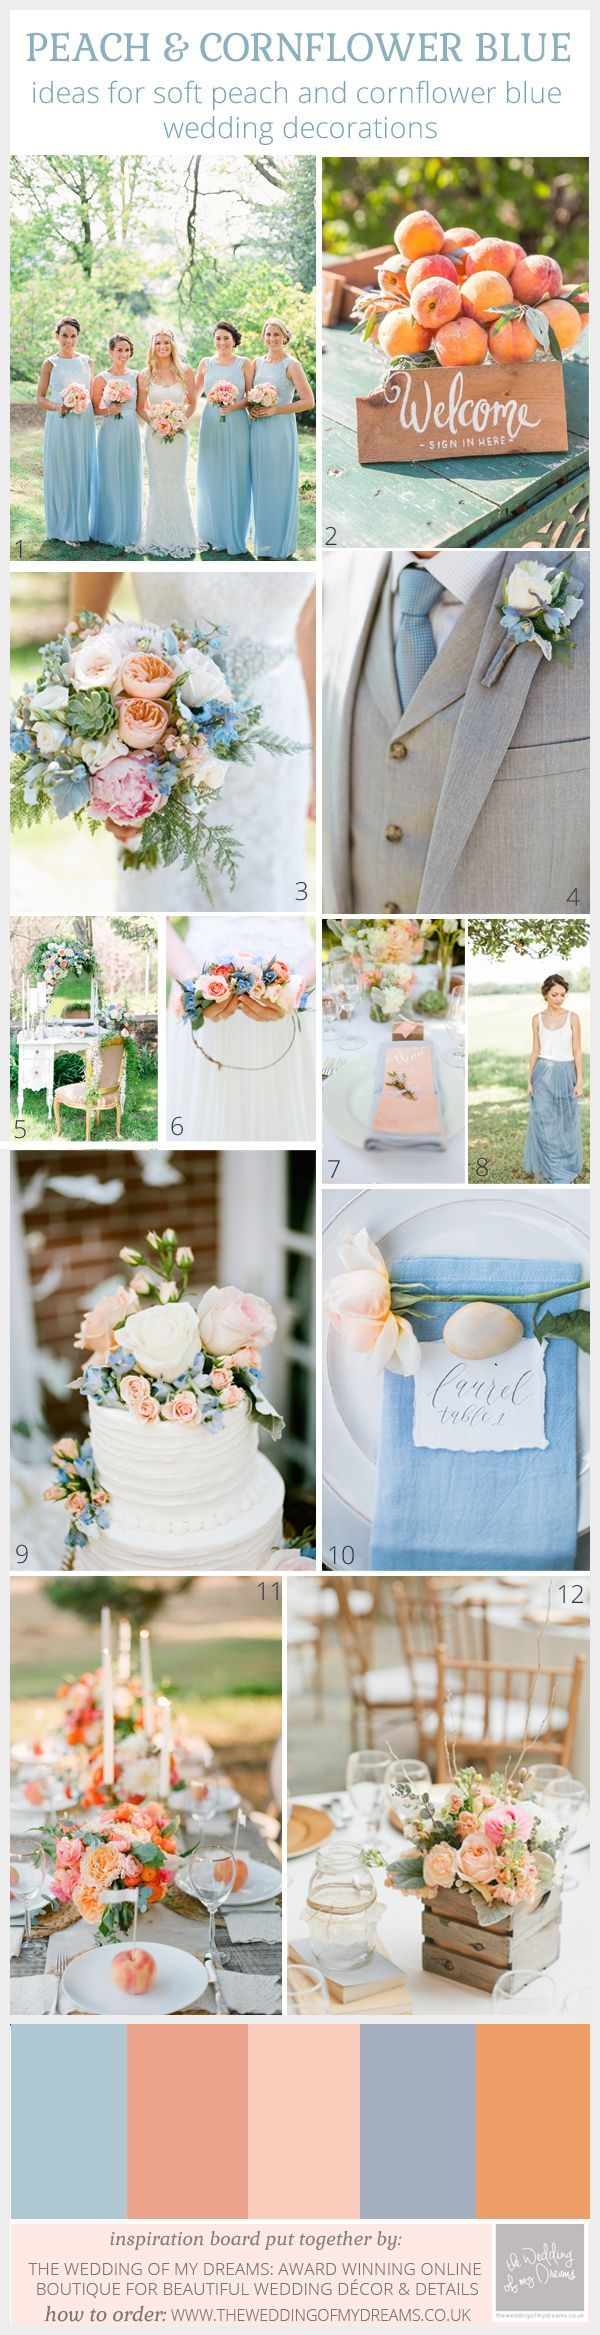 peach and blue wedding decorations and ideas